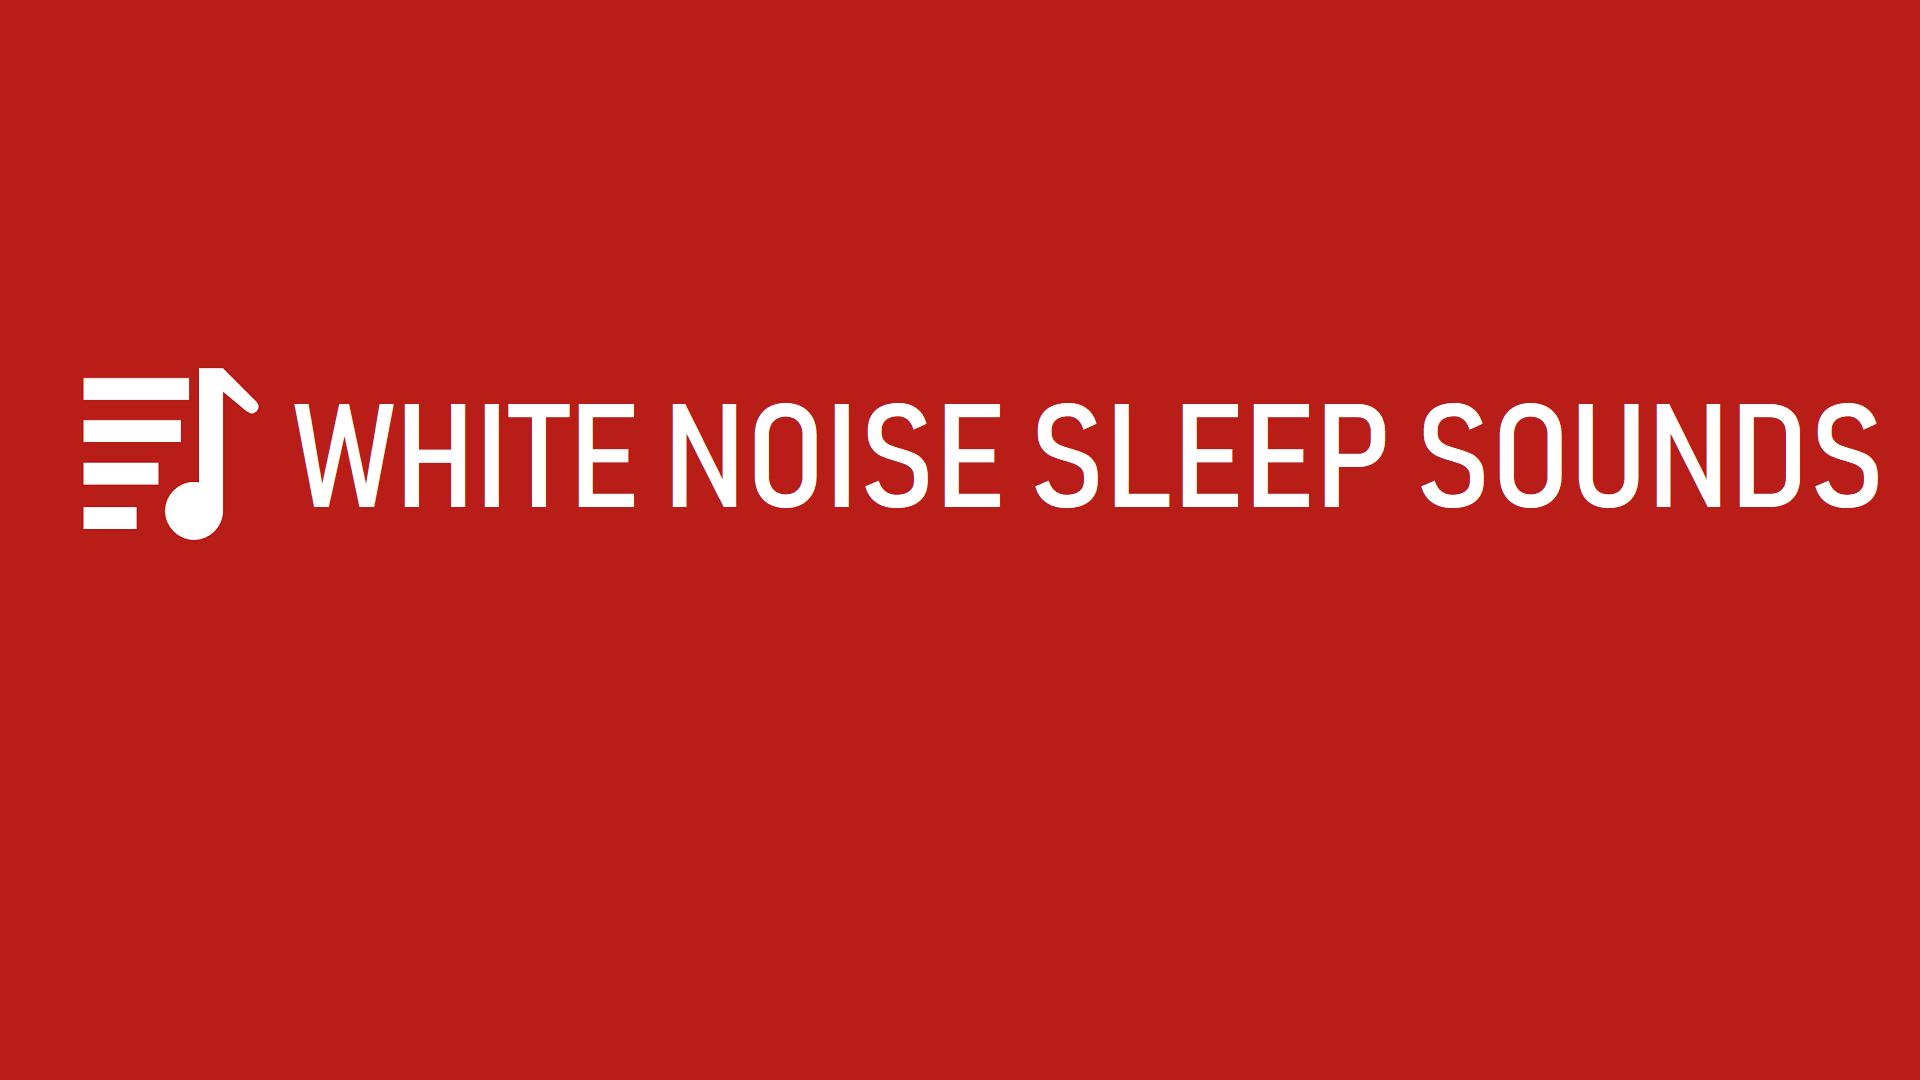 Get White Noise Sleep Sounds - Microsoft Store